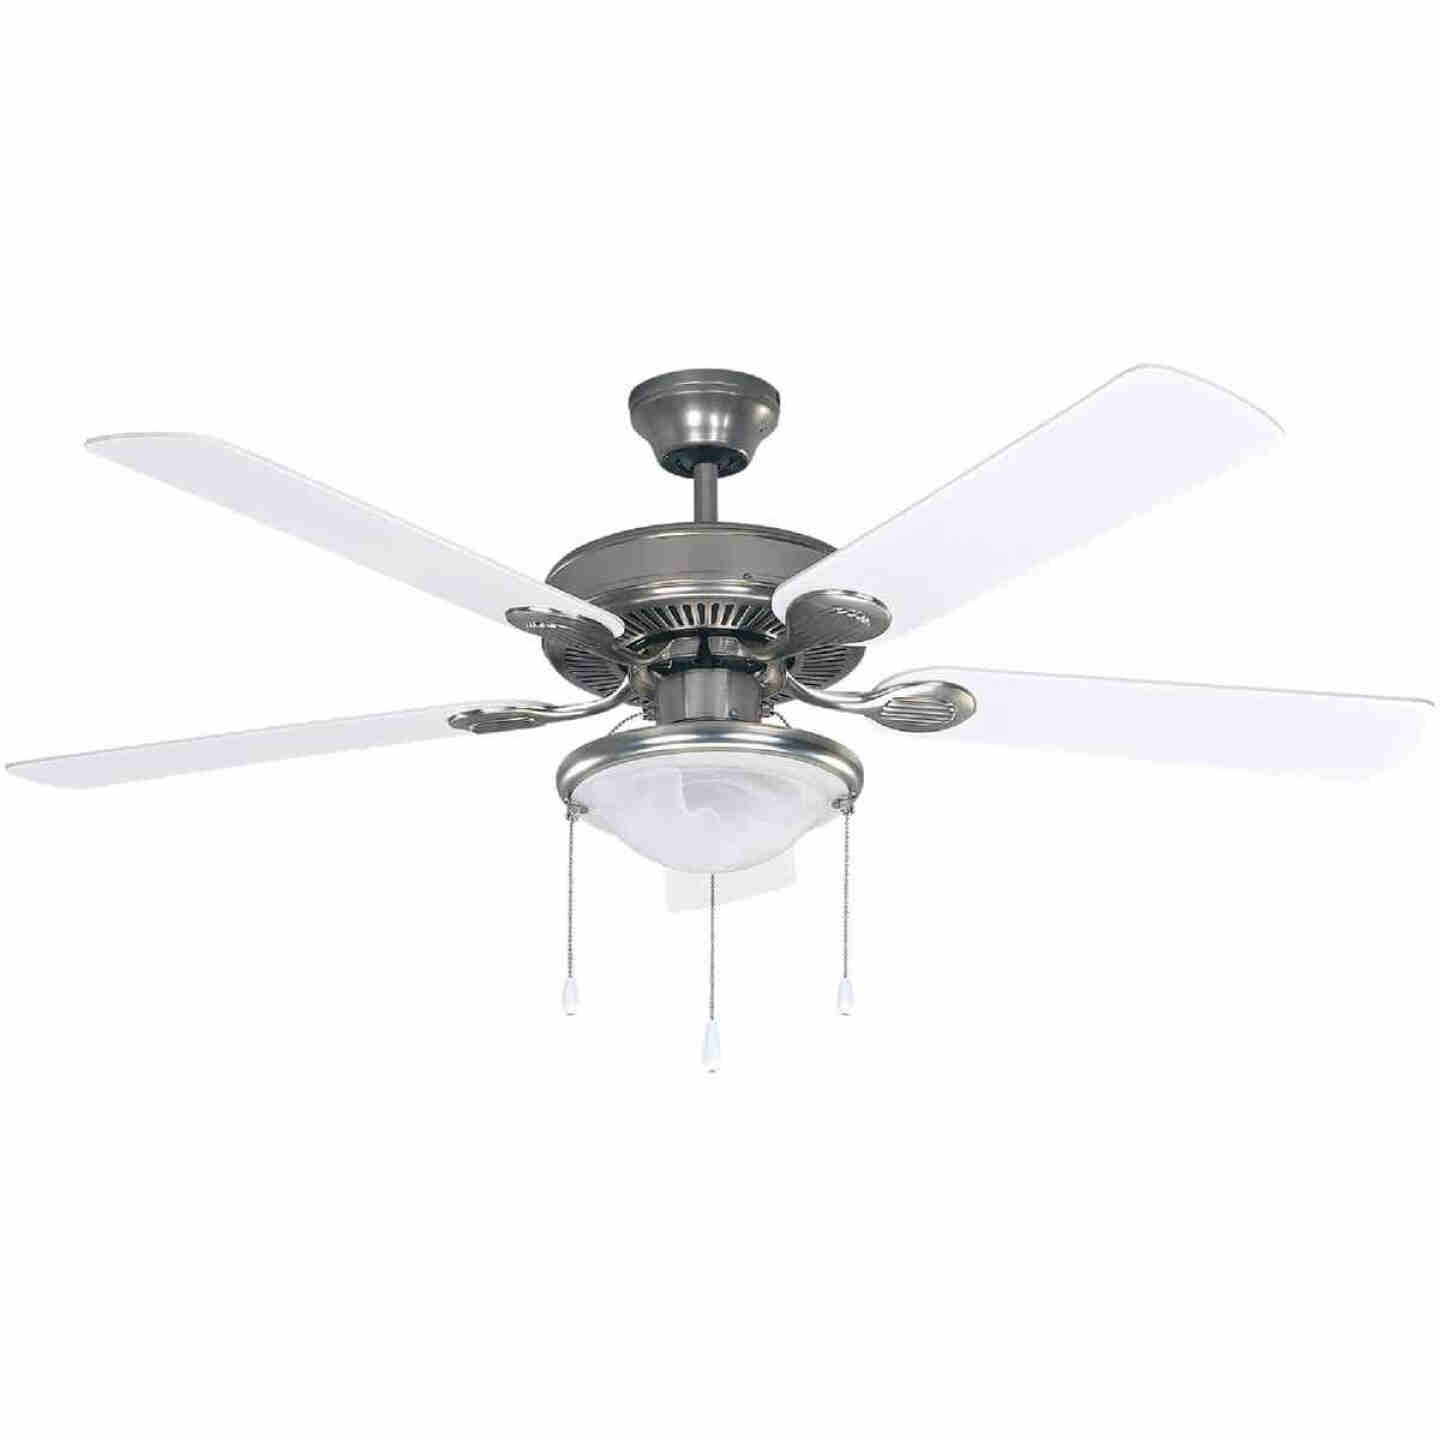 Home Impressions Kincade 52 In. Brushed Nickel Ceiling Fan with Light Kit Image 1